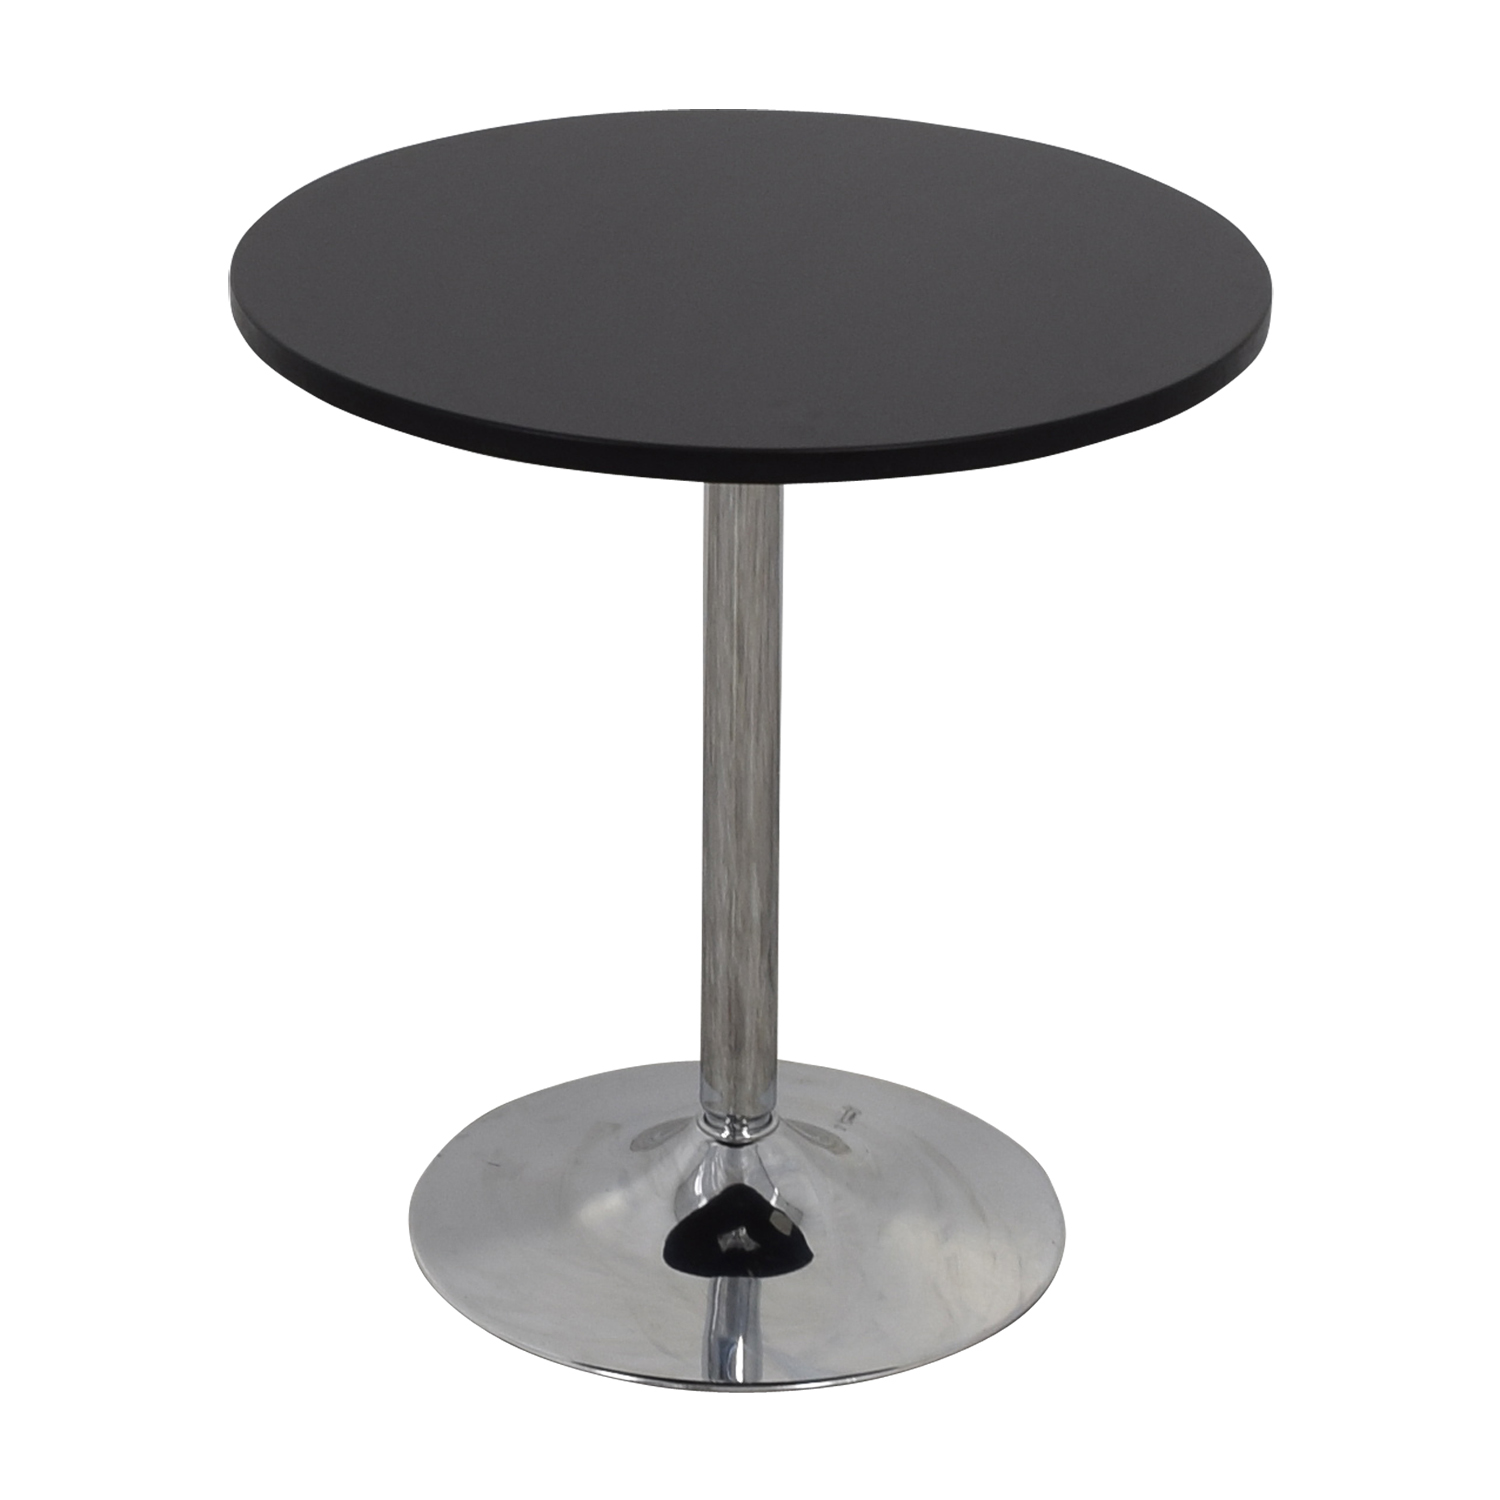 off pedestal accent table tables used white coupon inch tablecloth marble glass small half round console oriental brass coffee rustic dining centerpieces black metal end cordless